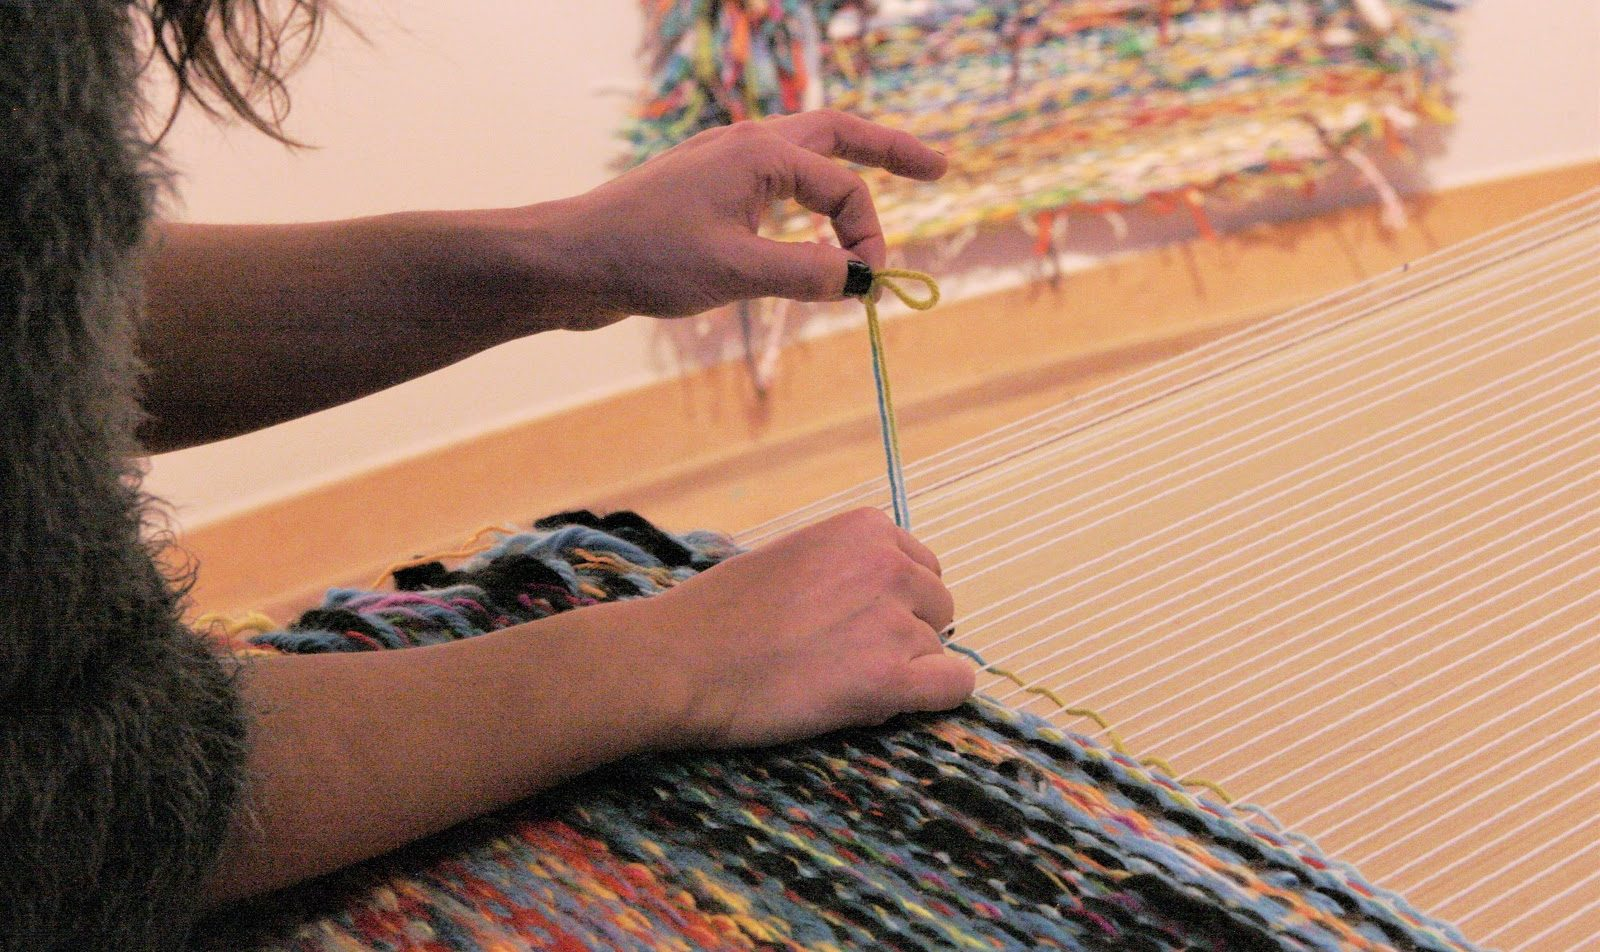 DIY Weaving with Project Create